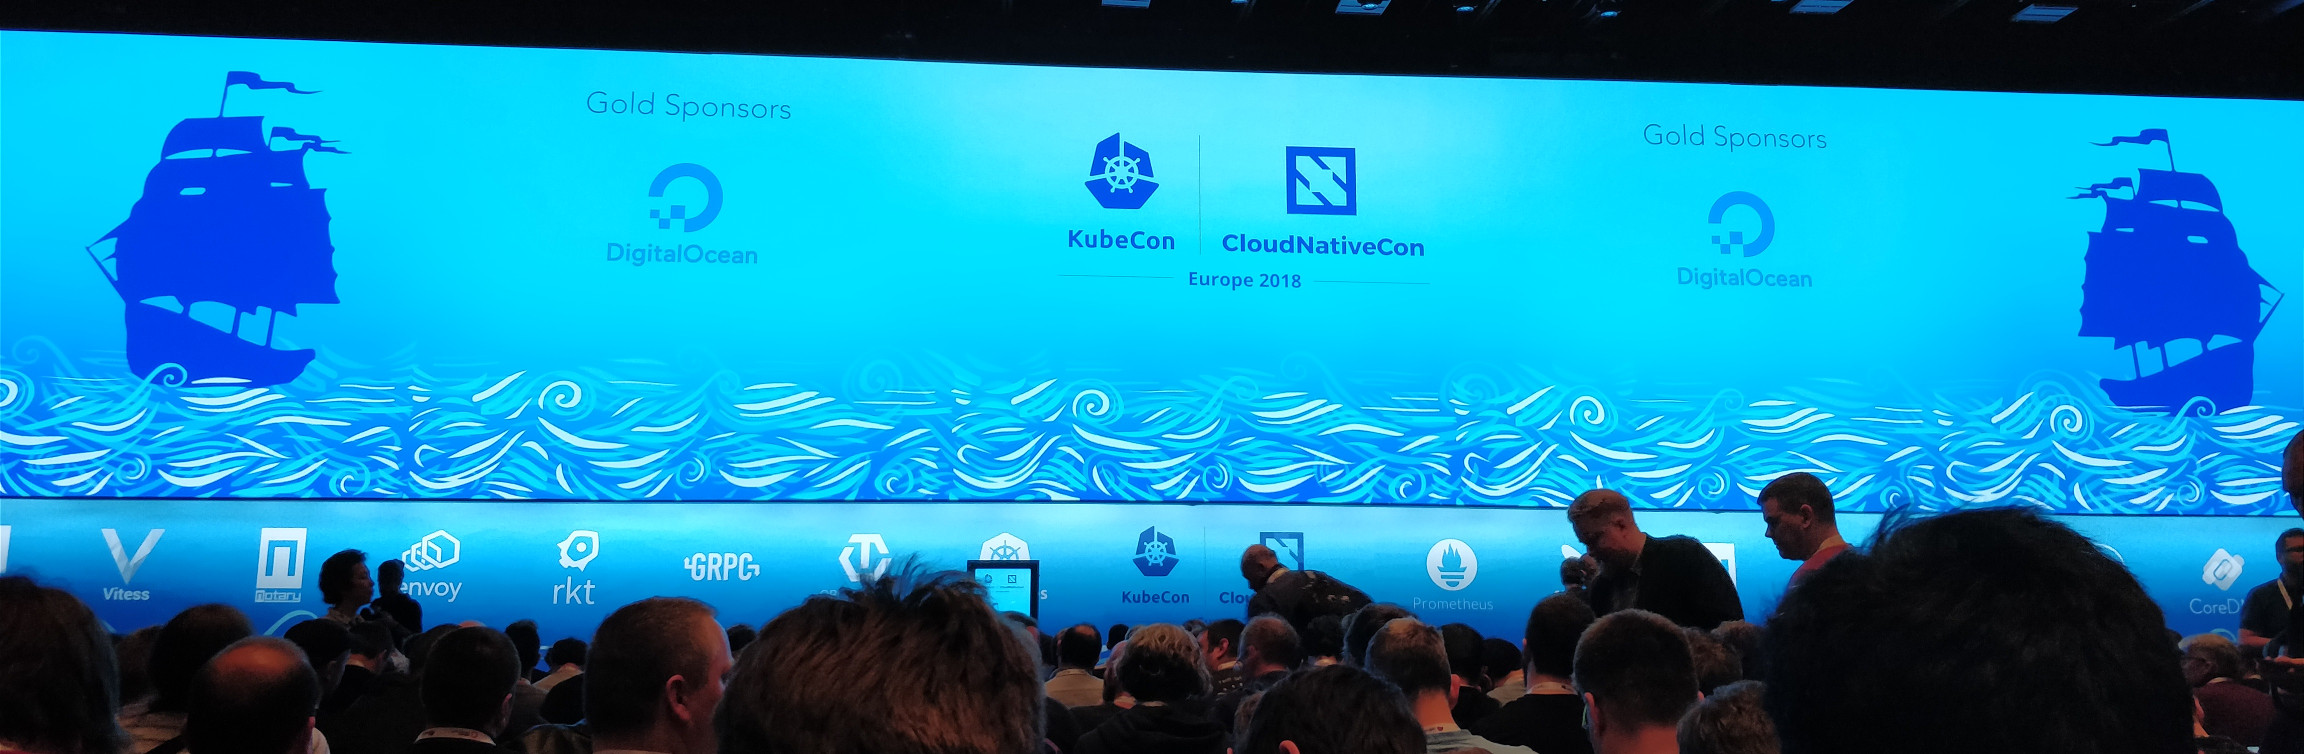 KubeCon 2018 Copenhagen, day 2